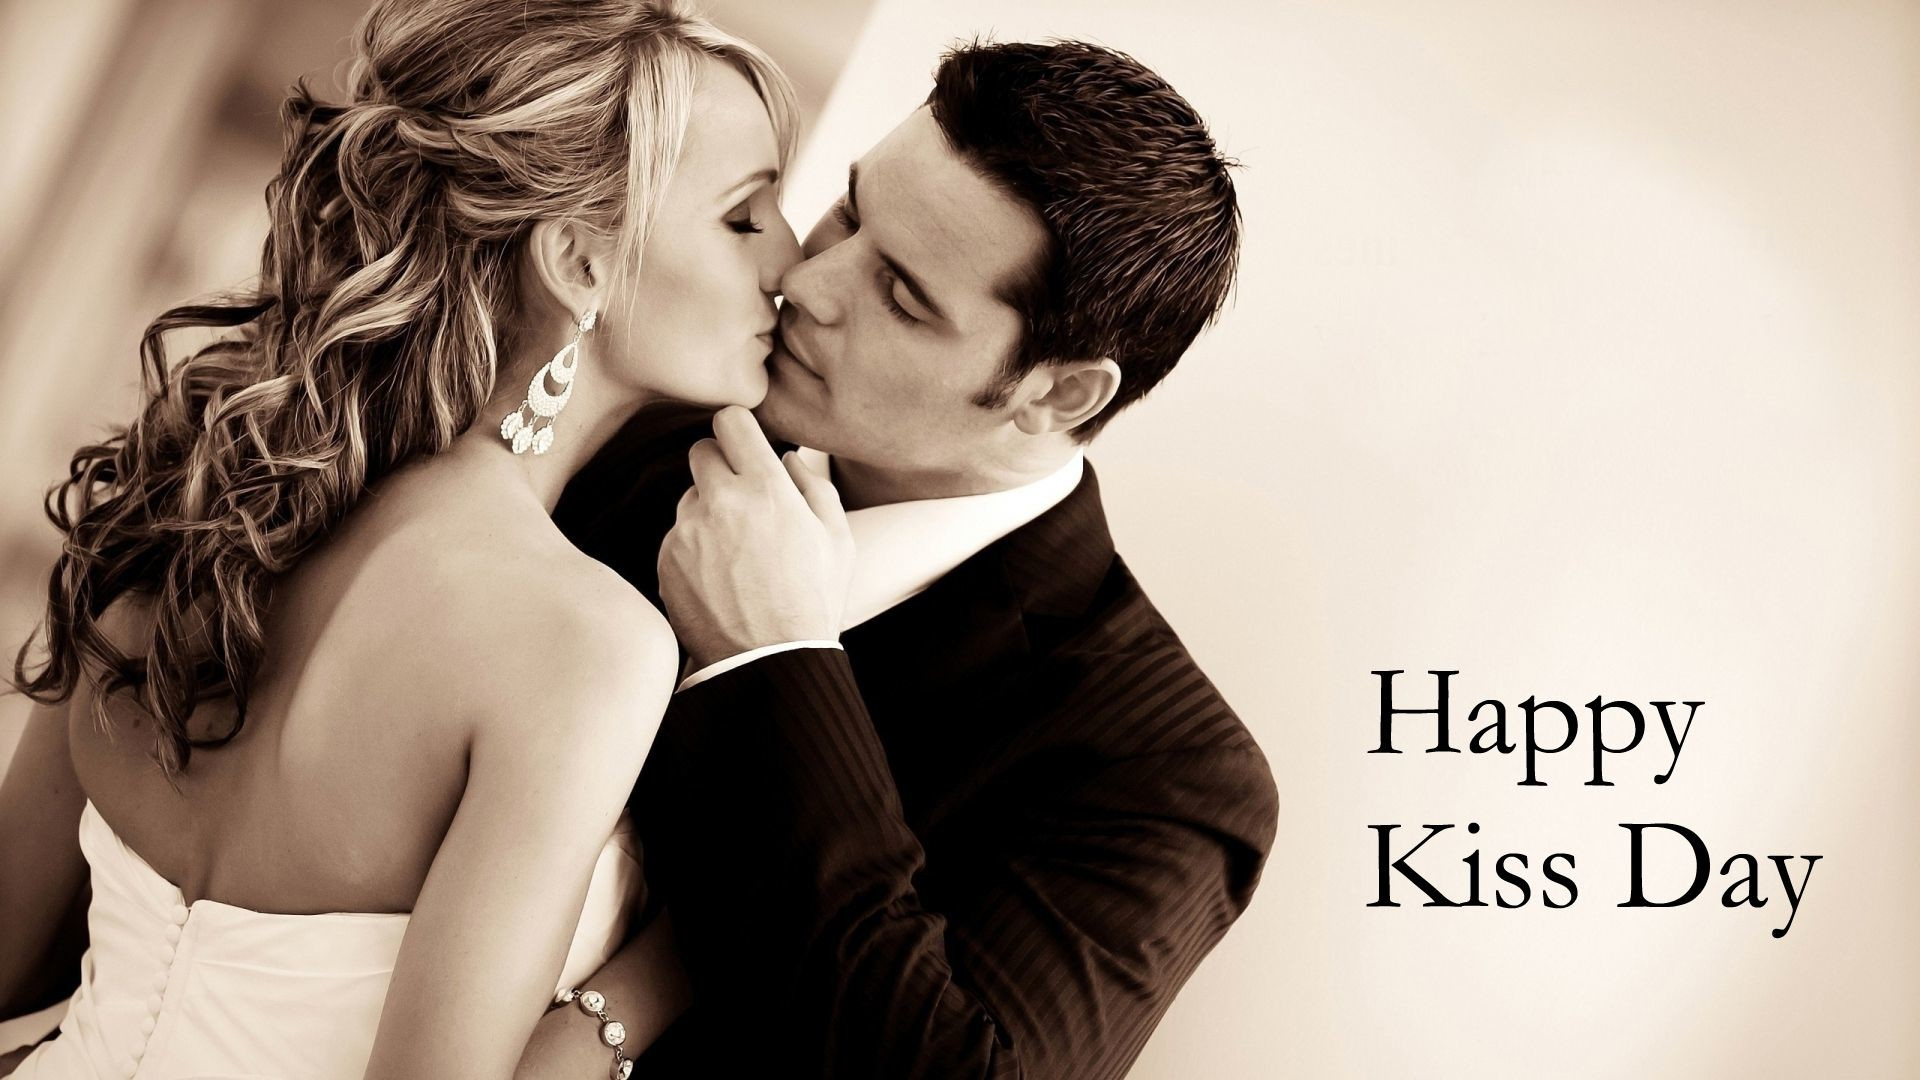 1920x1080 ... Download Kiss Wallpaper, Kiss Day E-Greetings, Friendship Ecards, Happy  Kiss Day ...